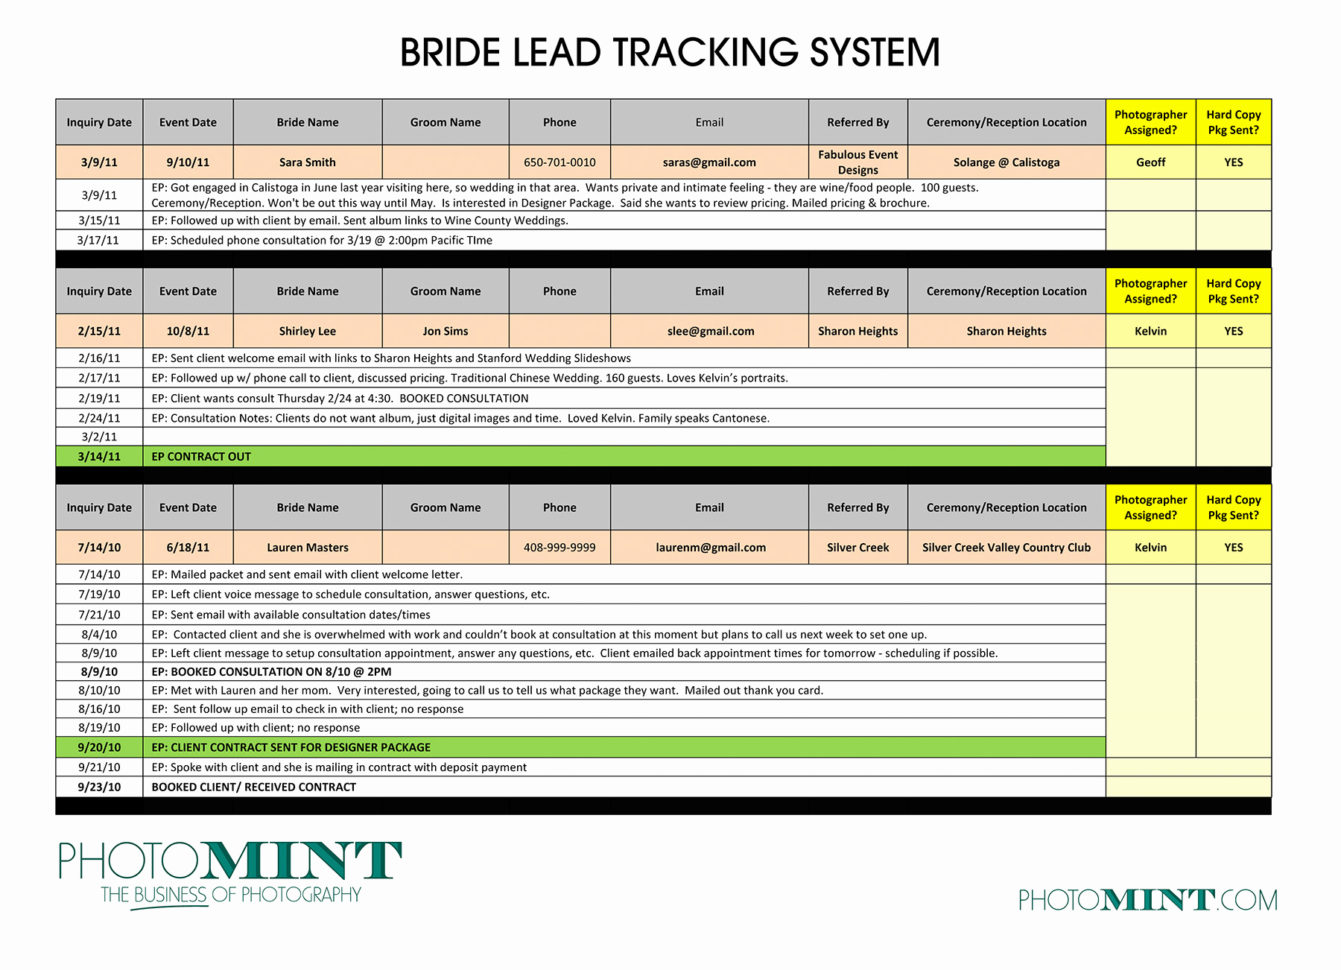 Sales Activity Tracking Spreadsheet Elegant Sales Meeting Report For Sales Prospect Tracking Spreadsheet